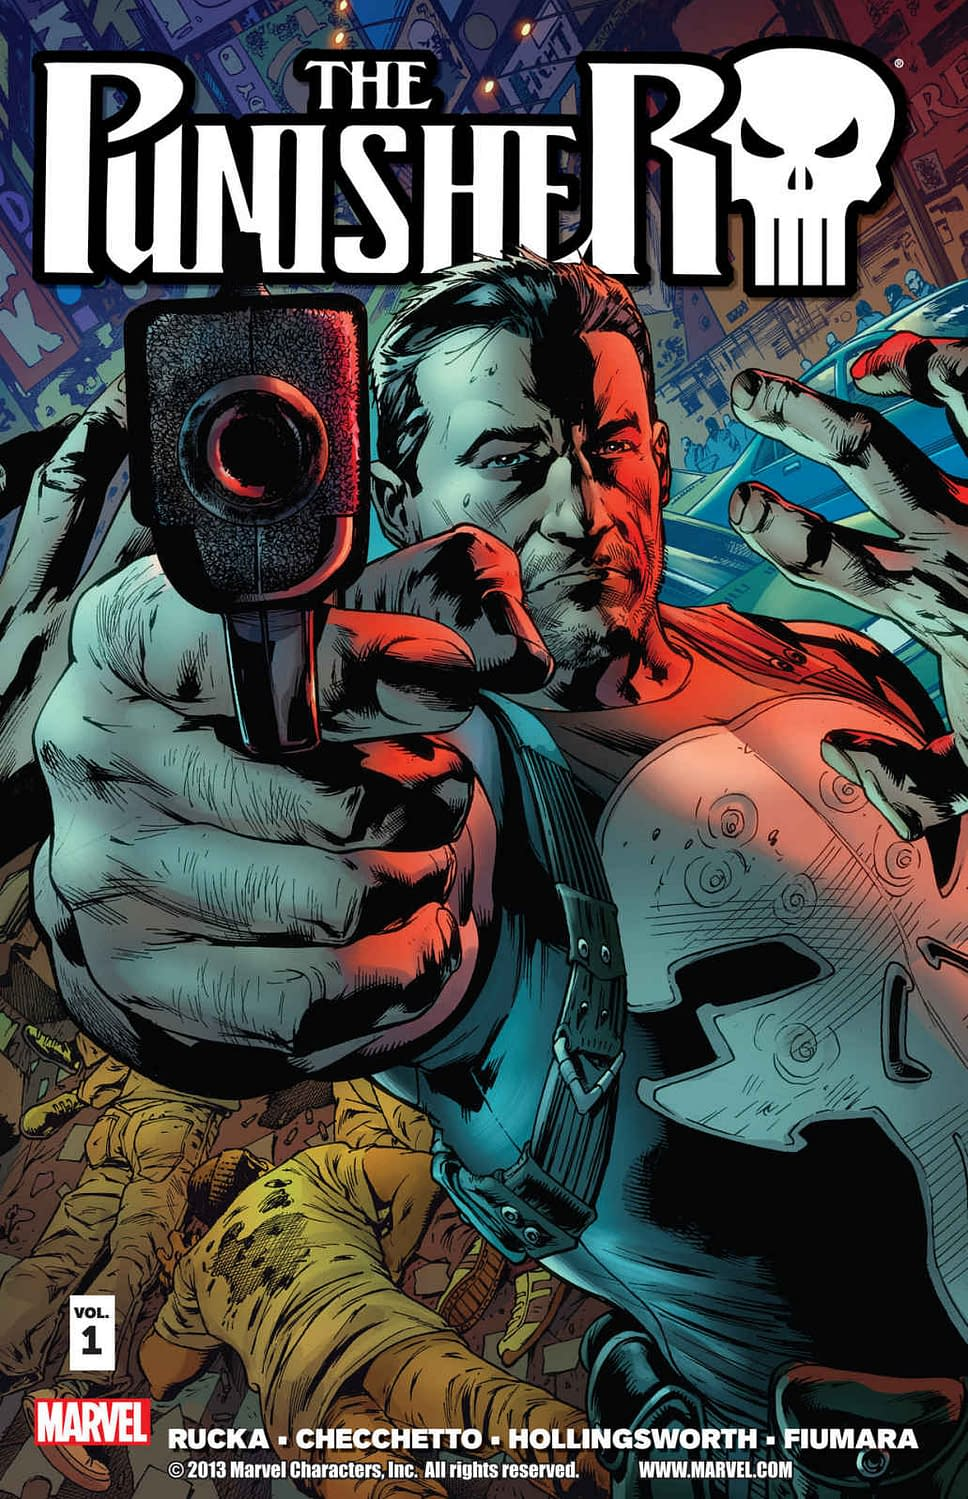 Marvel Doesn't Want You To Read Greg Rucka's Punisher